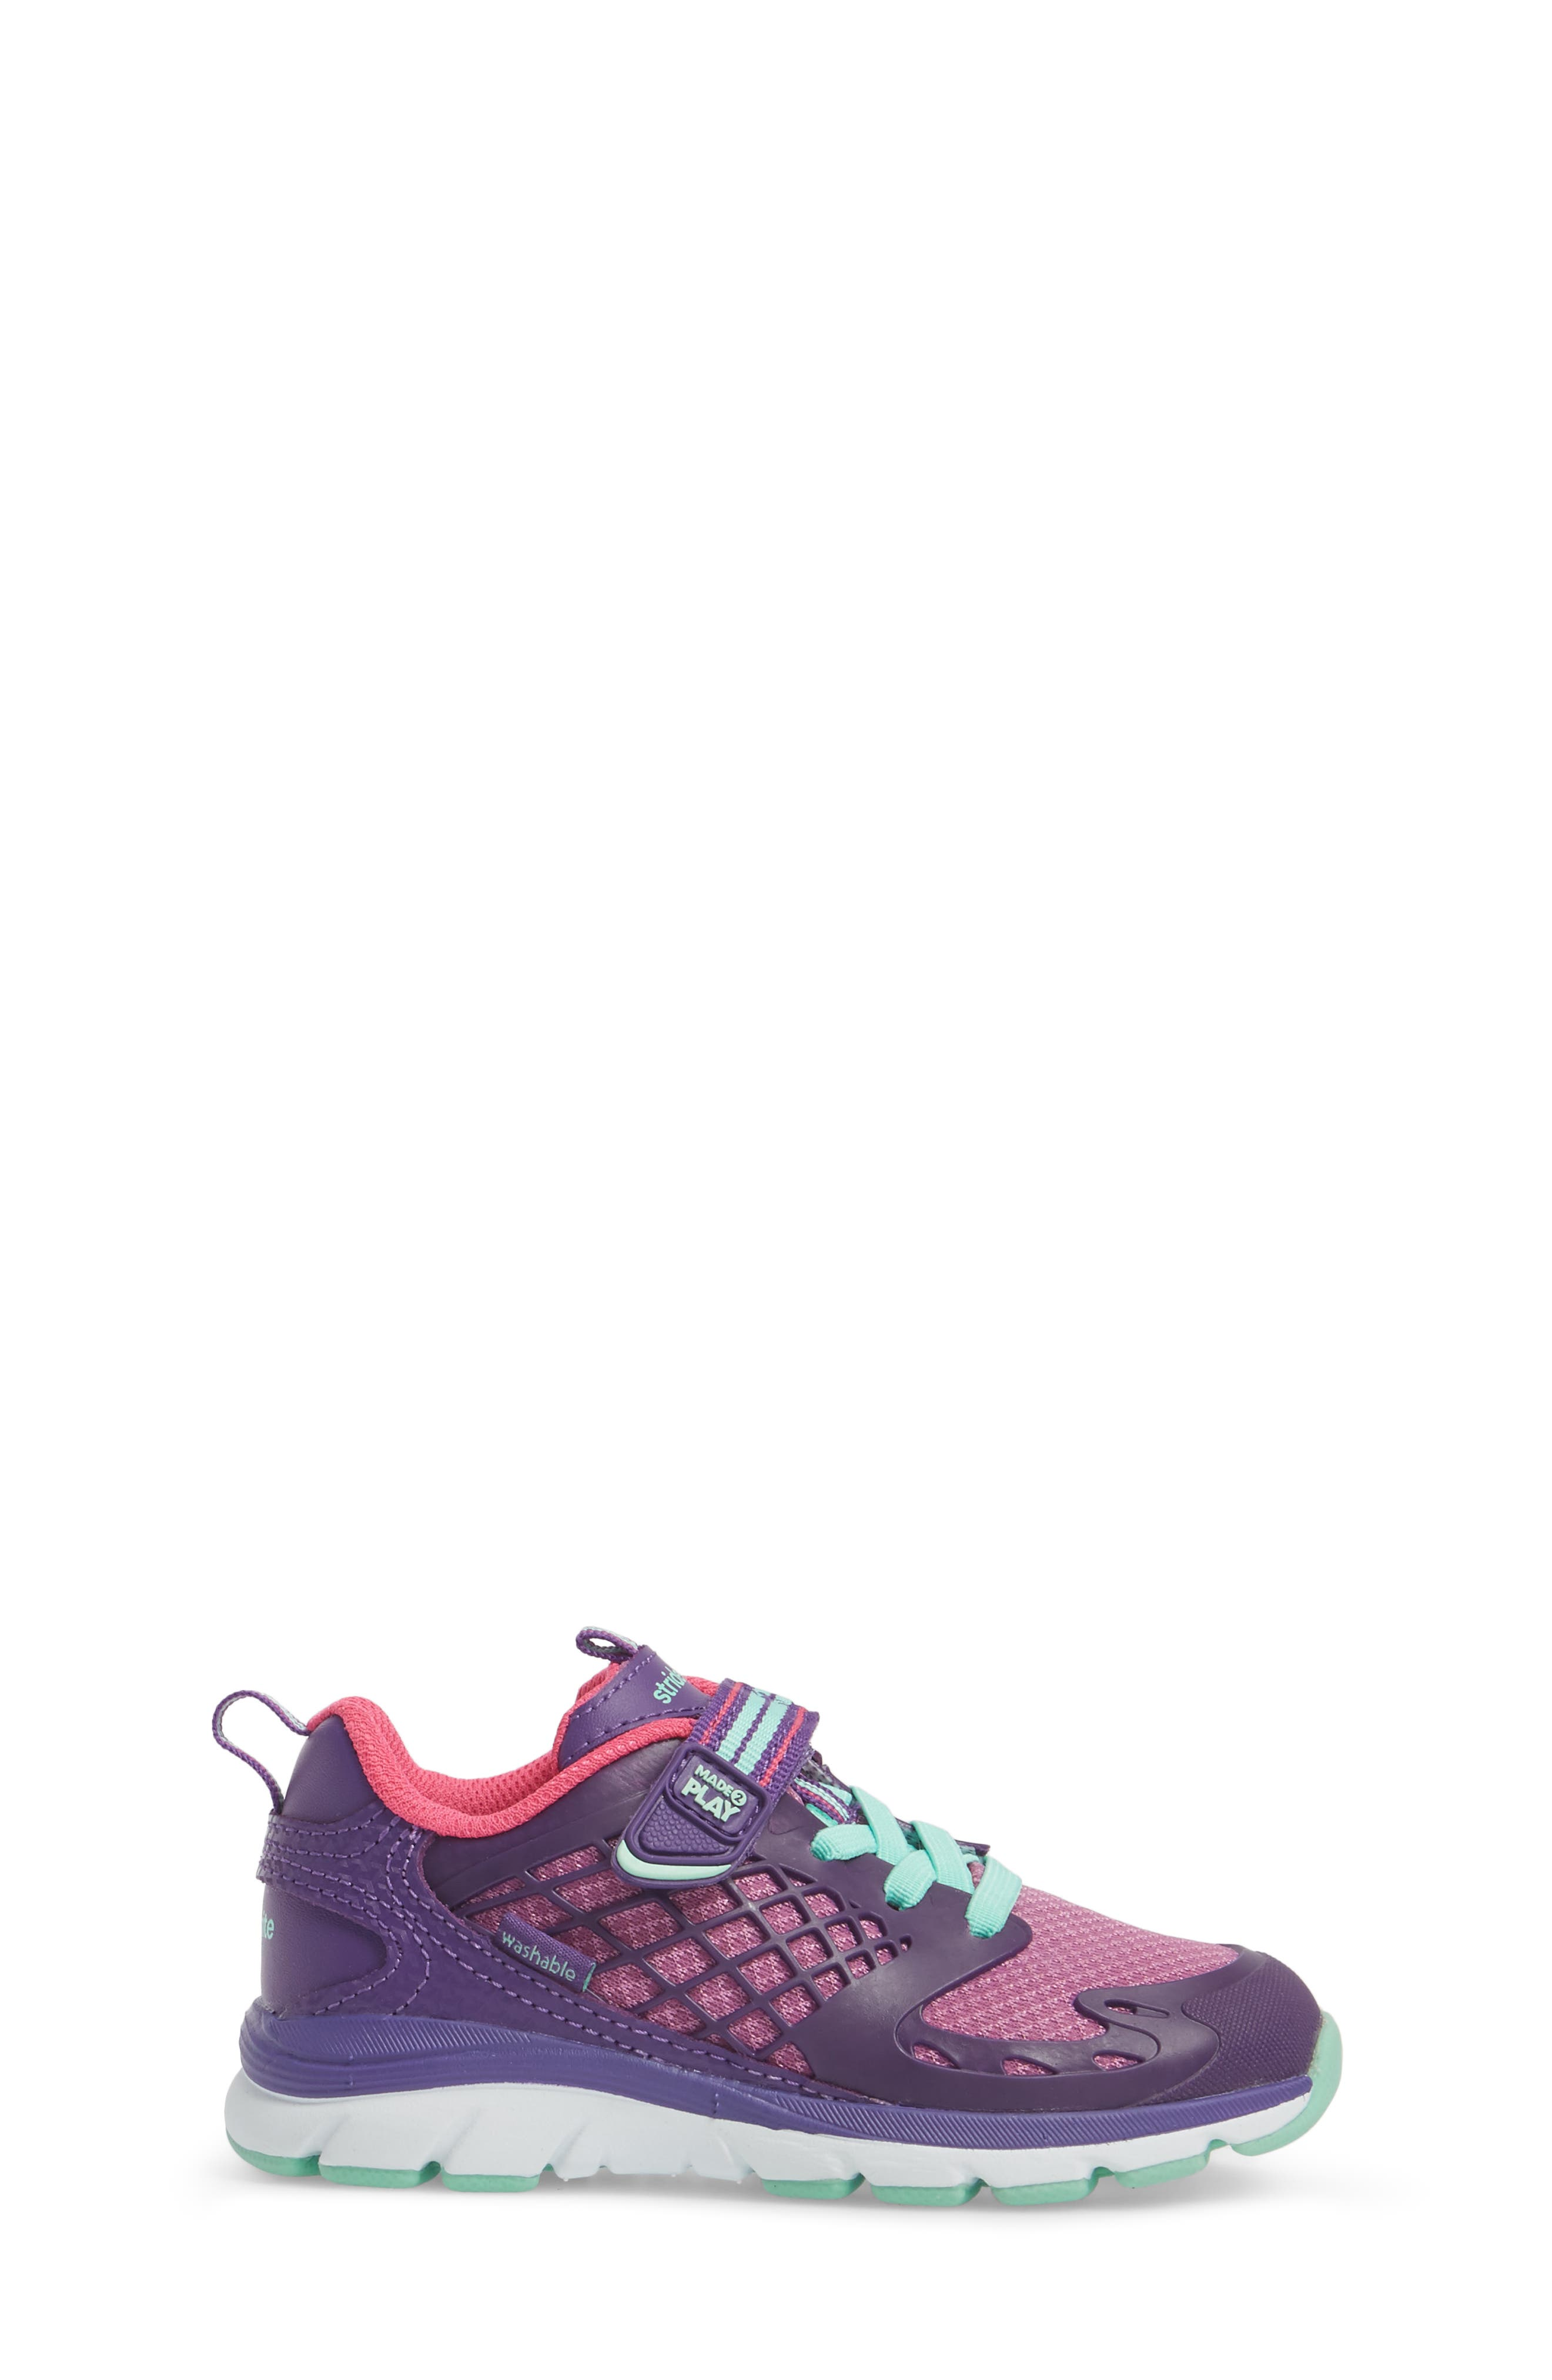 'Made2Play<sup>®</sup> Cannan Lace' Sneaker,                             Alternate thumbnail 3, color,                             Purple Leather/ Textile